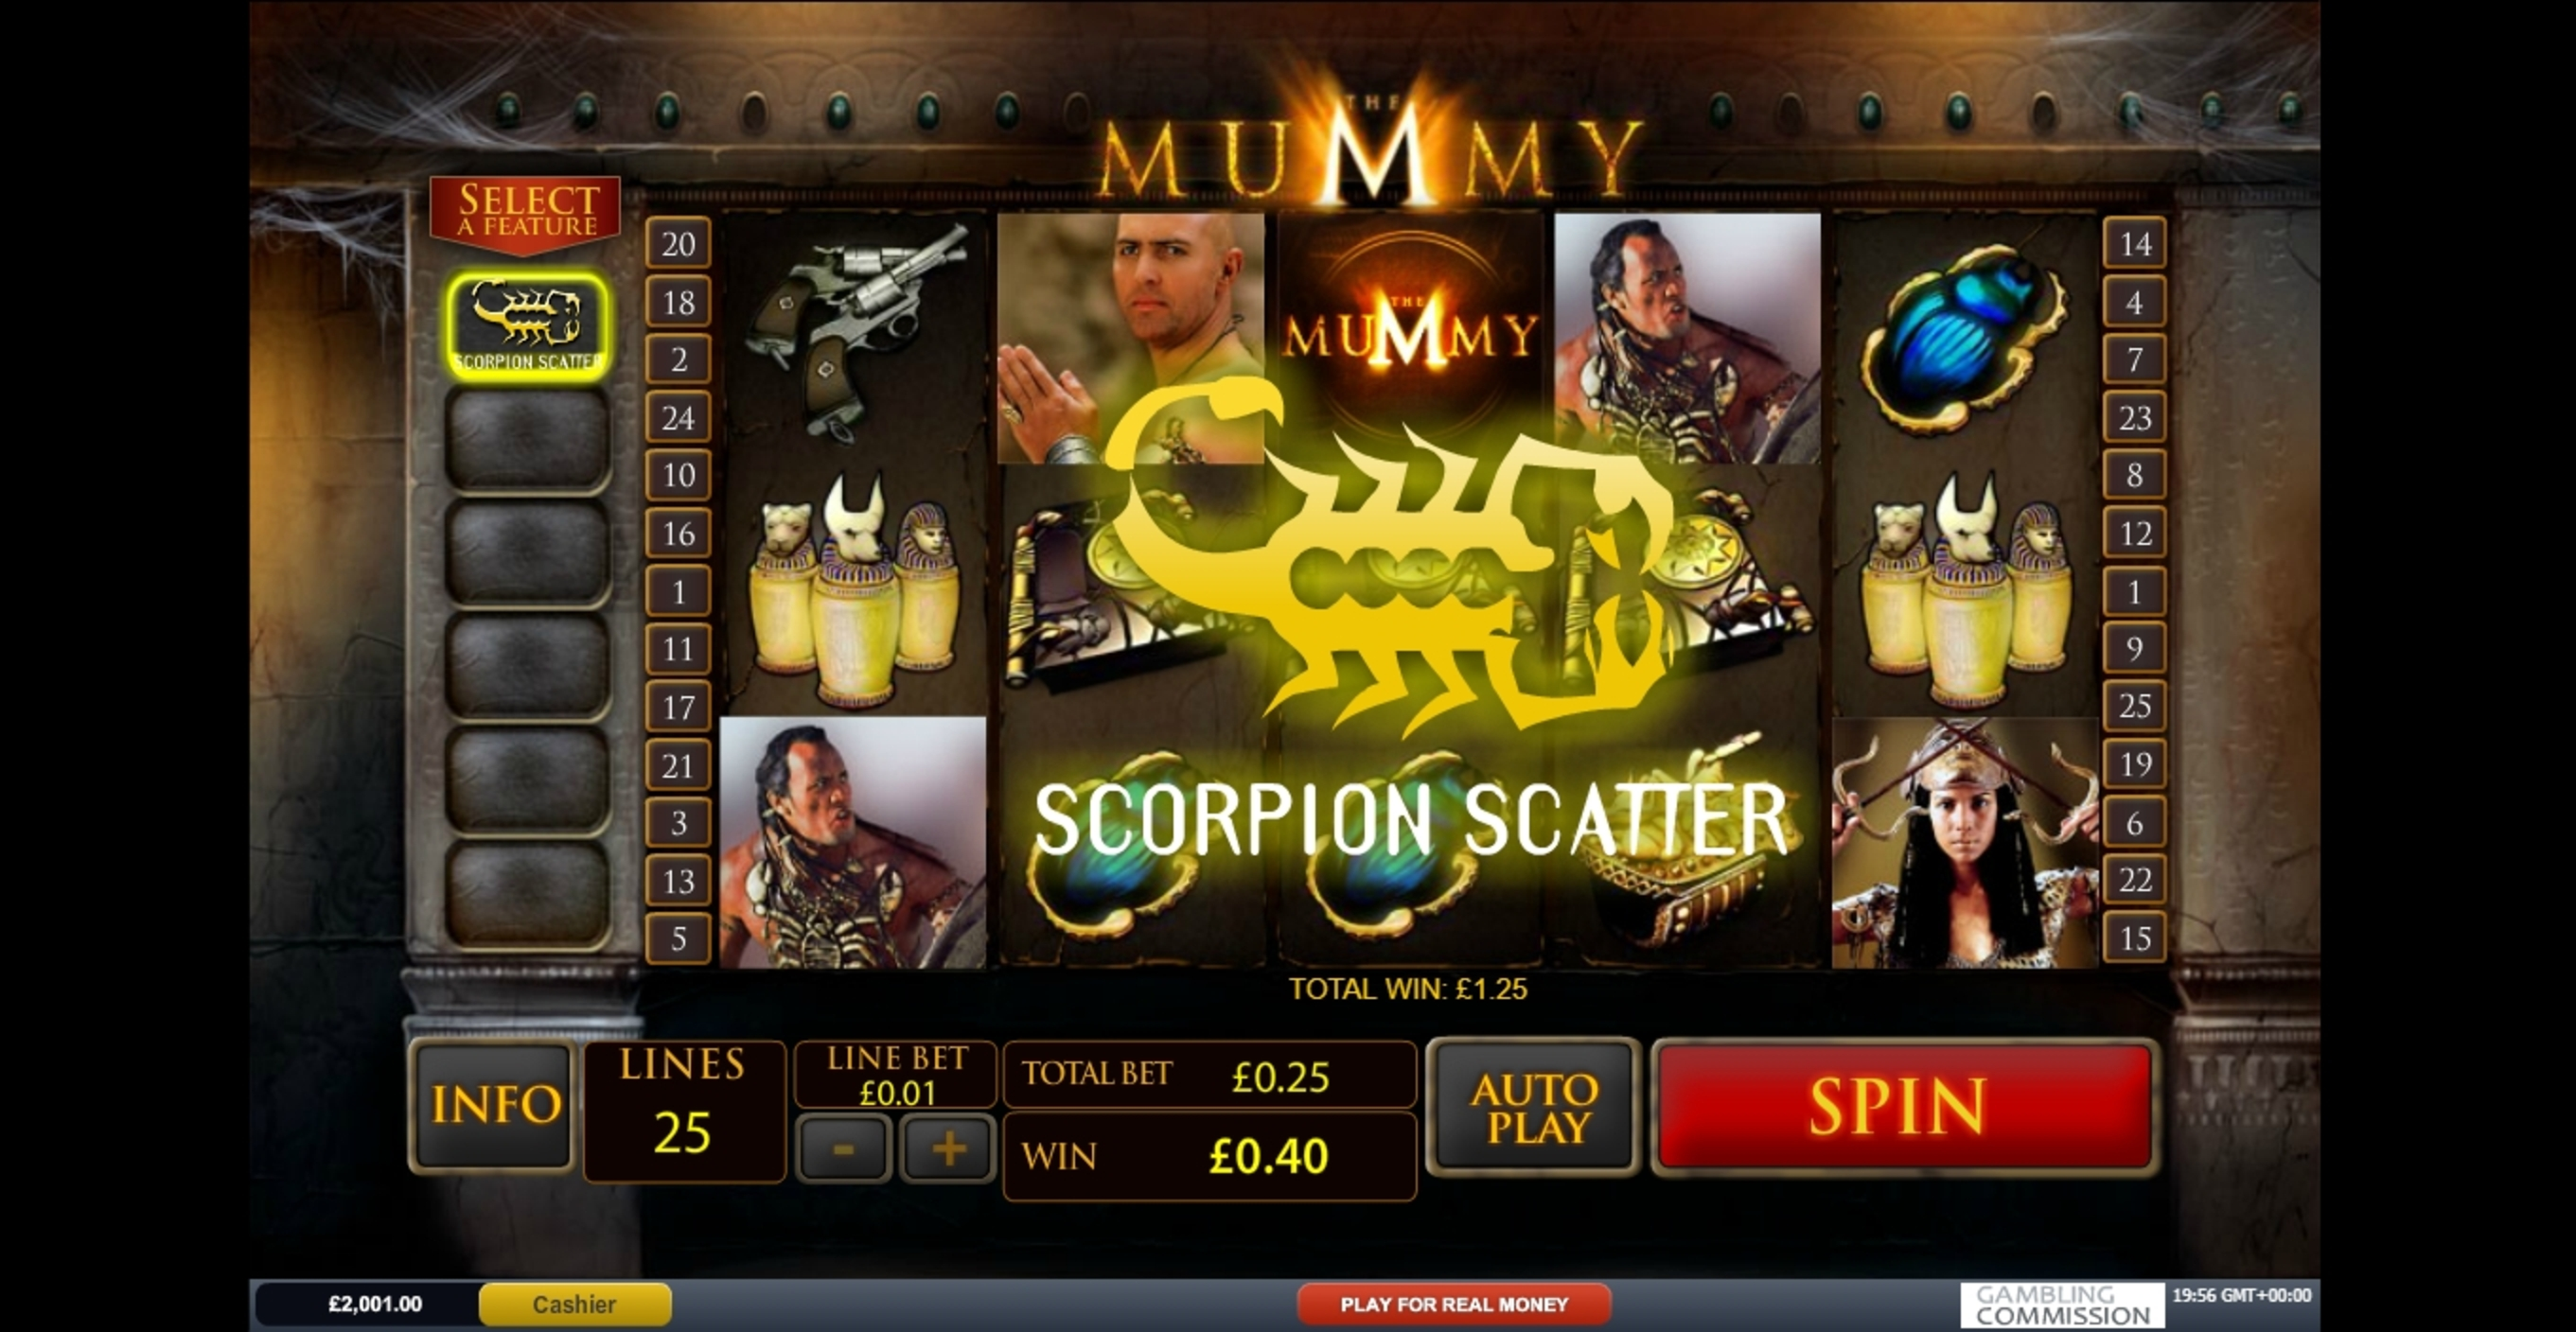 Win Money in The Mummy Free Slot Game by Playtech